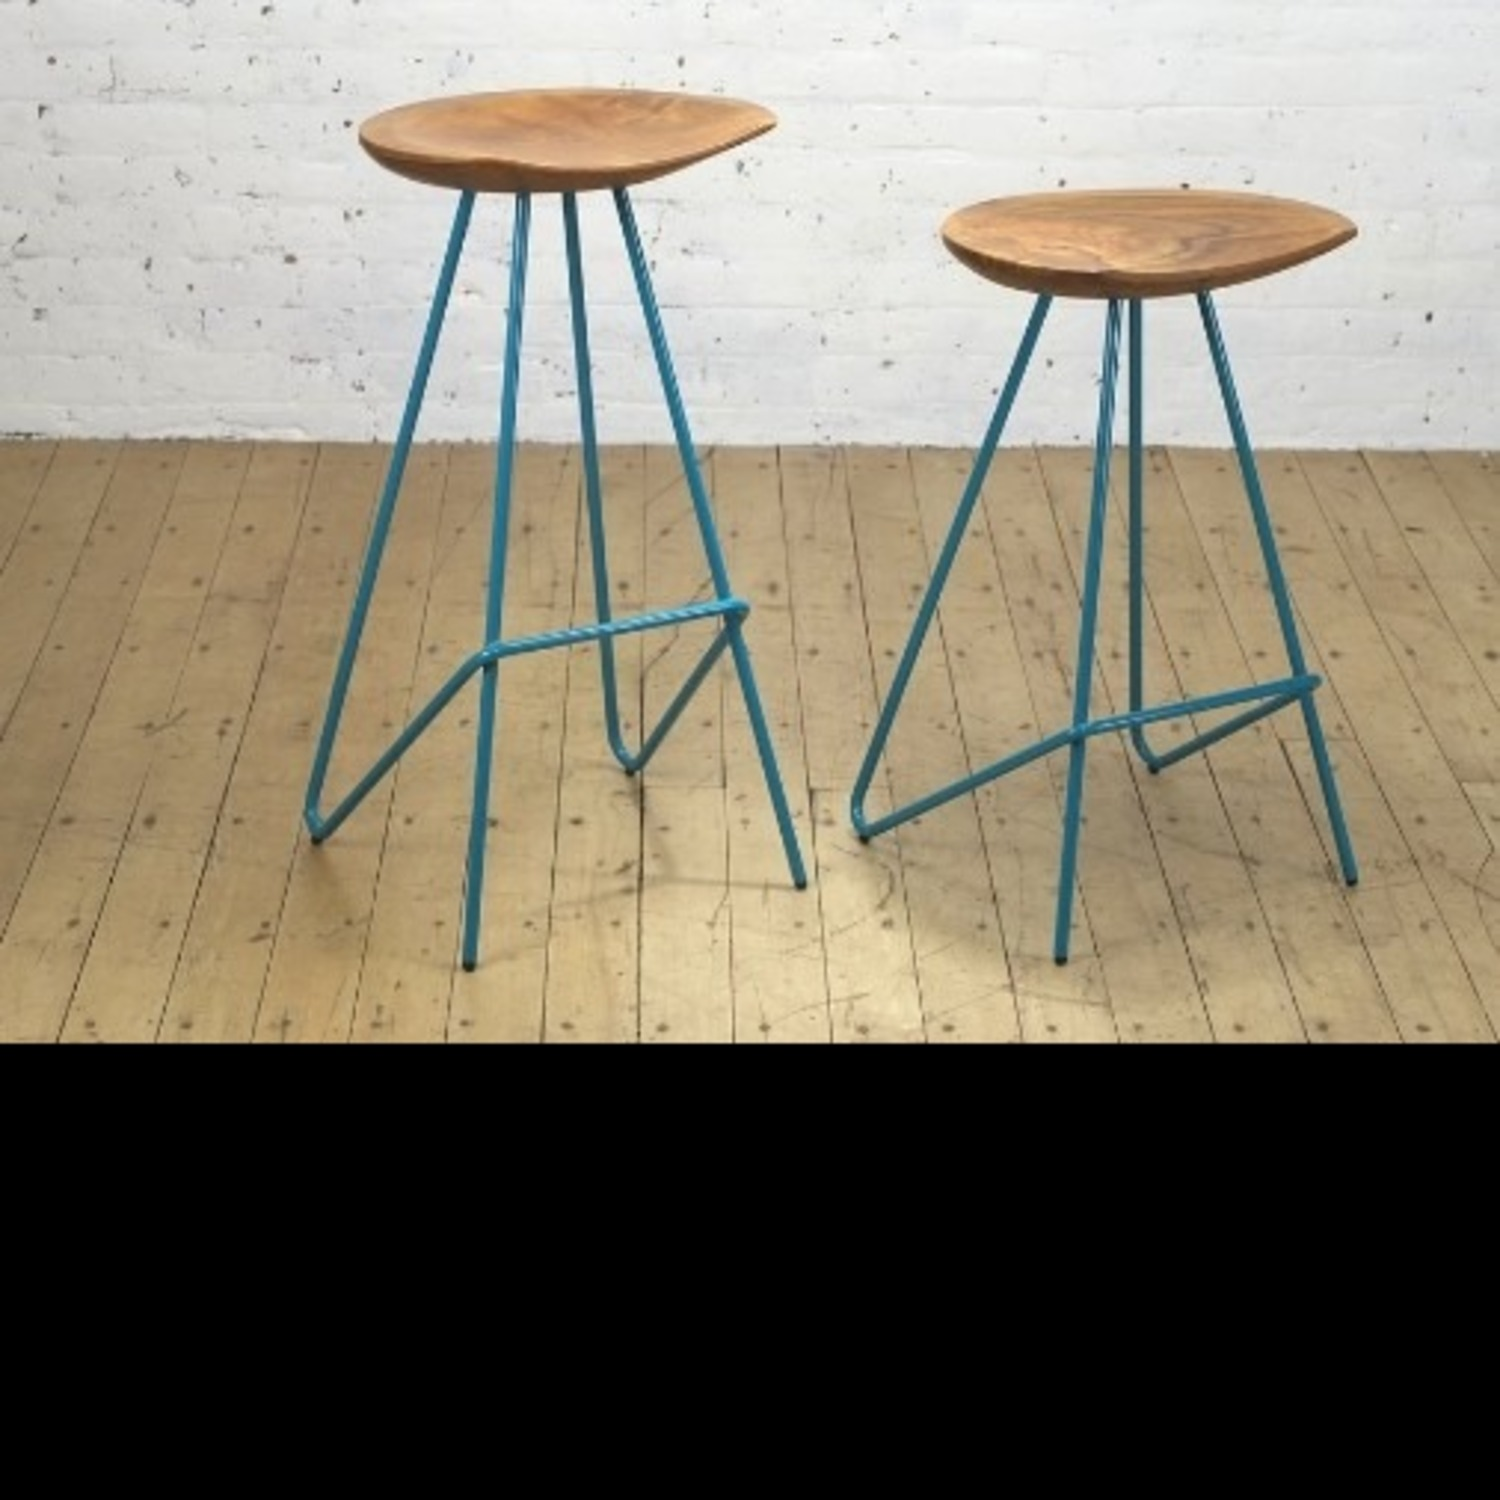 From The Source Perch Counter Stools - Set of 2 - image-11